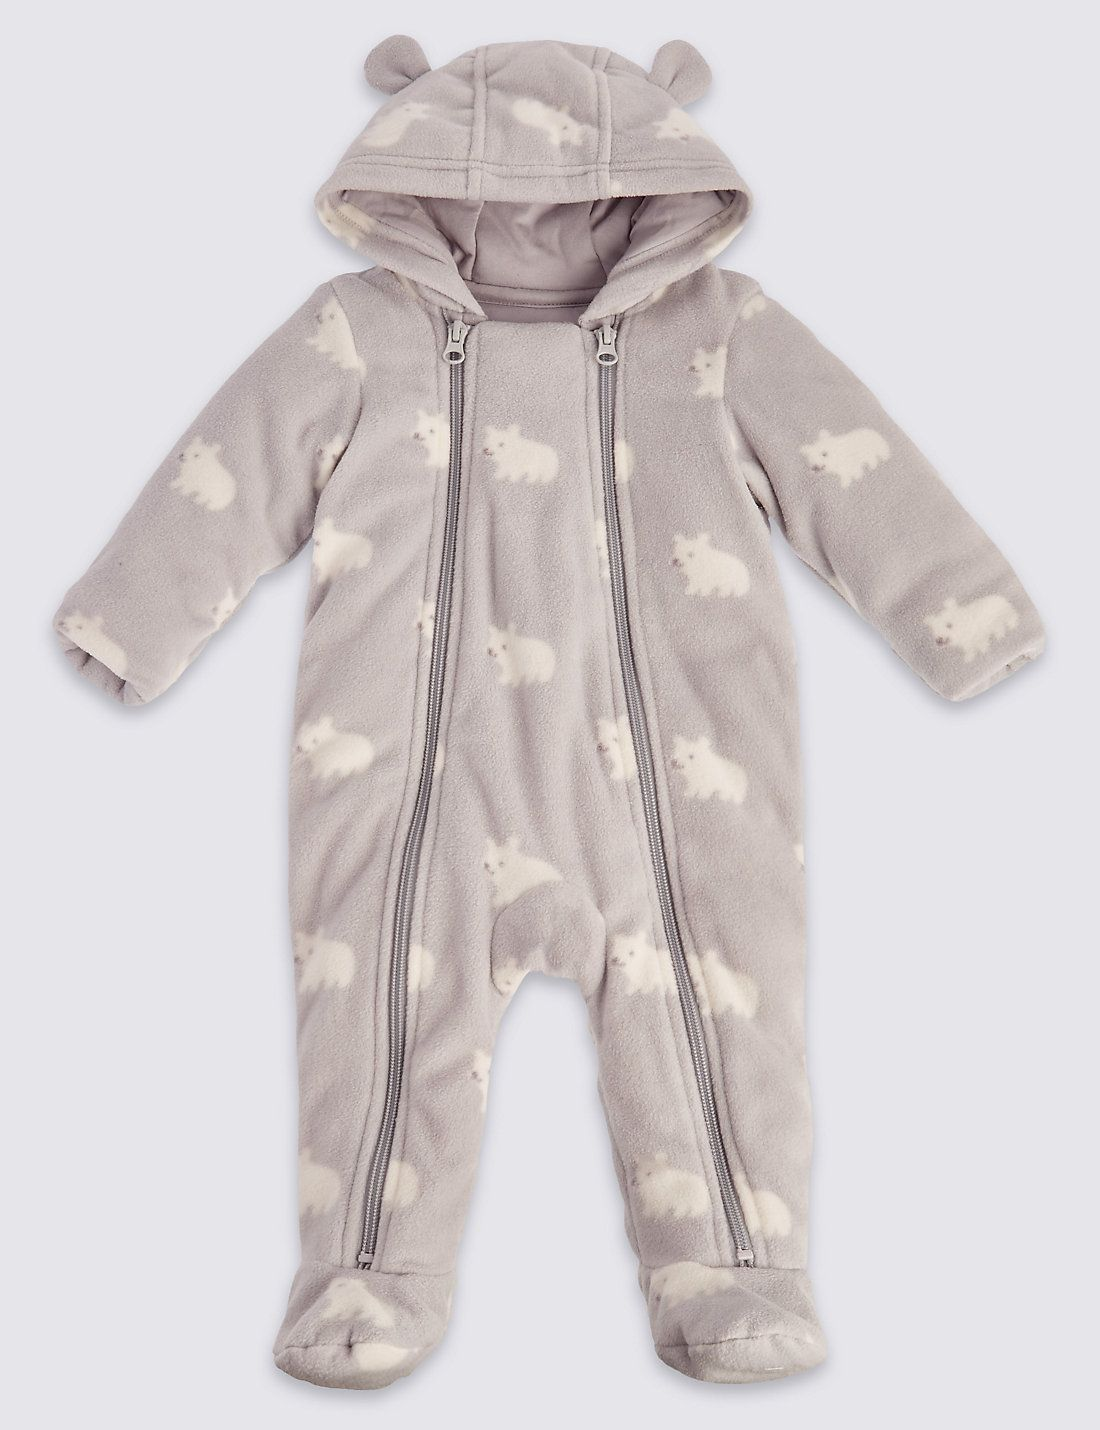 effa2059f281 Unisex Bear Animal Print Pramsuit. See more at www.parentideal.co.uk ...